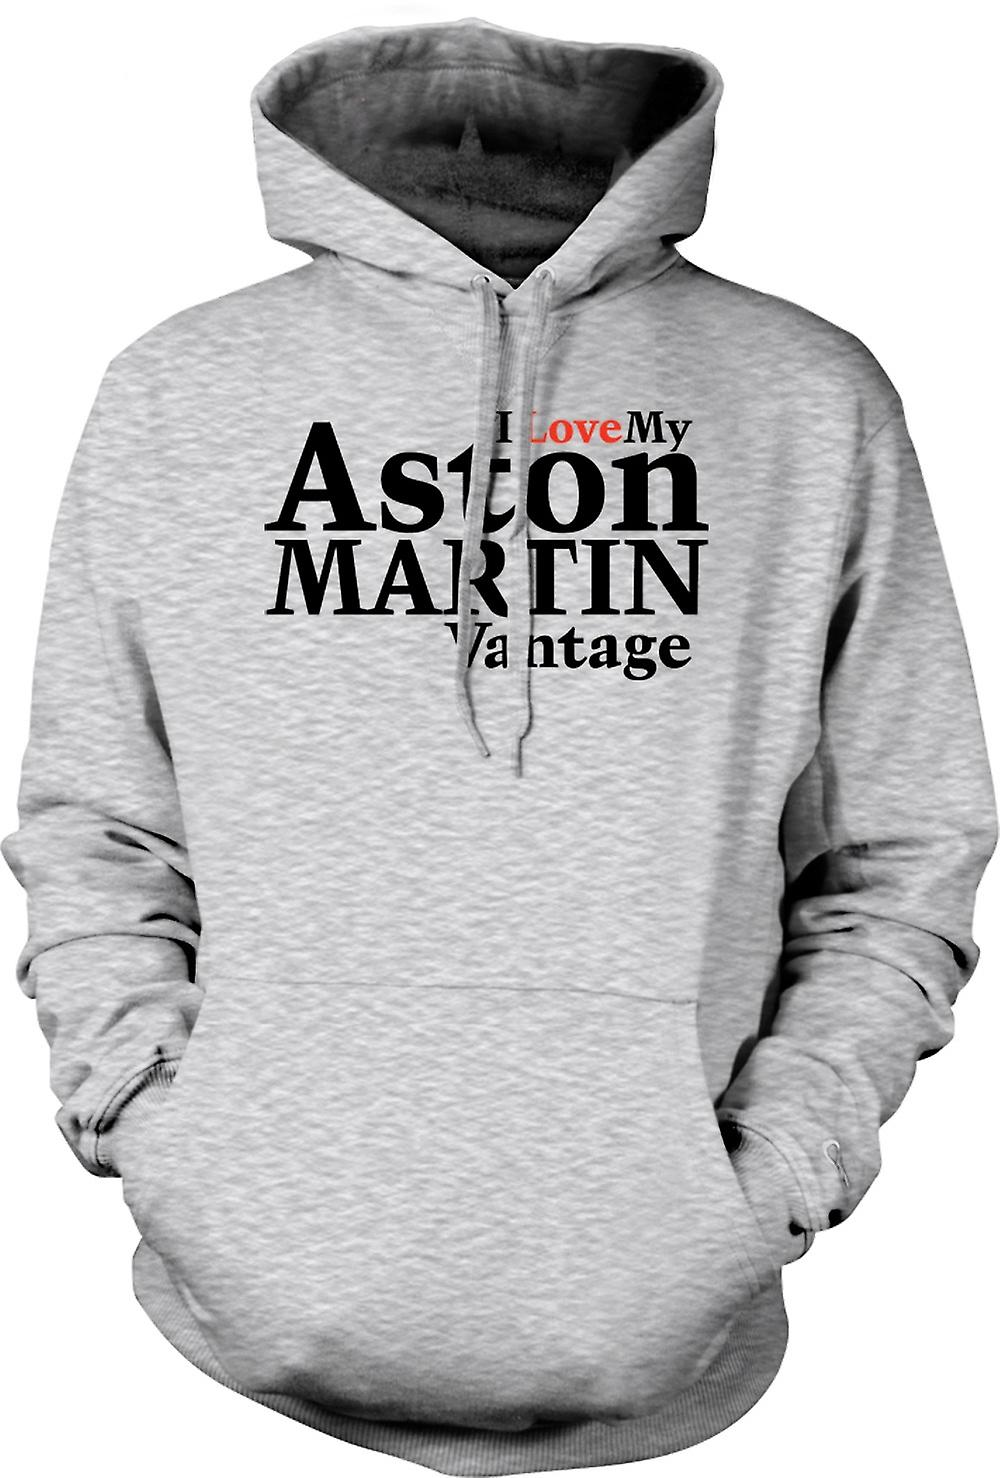 Mens Hoodie - I Love My Aston Martin Vantage - Car Enthusiast